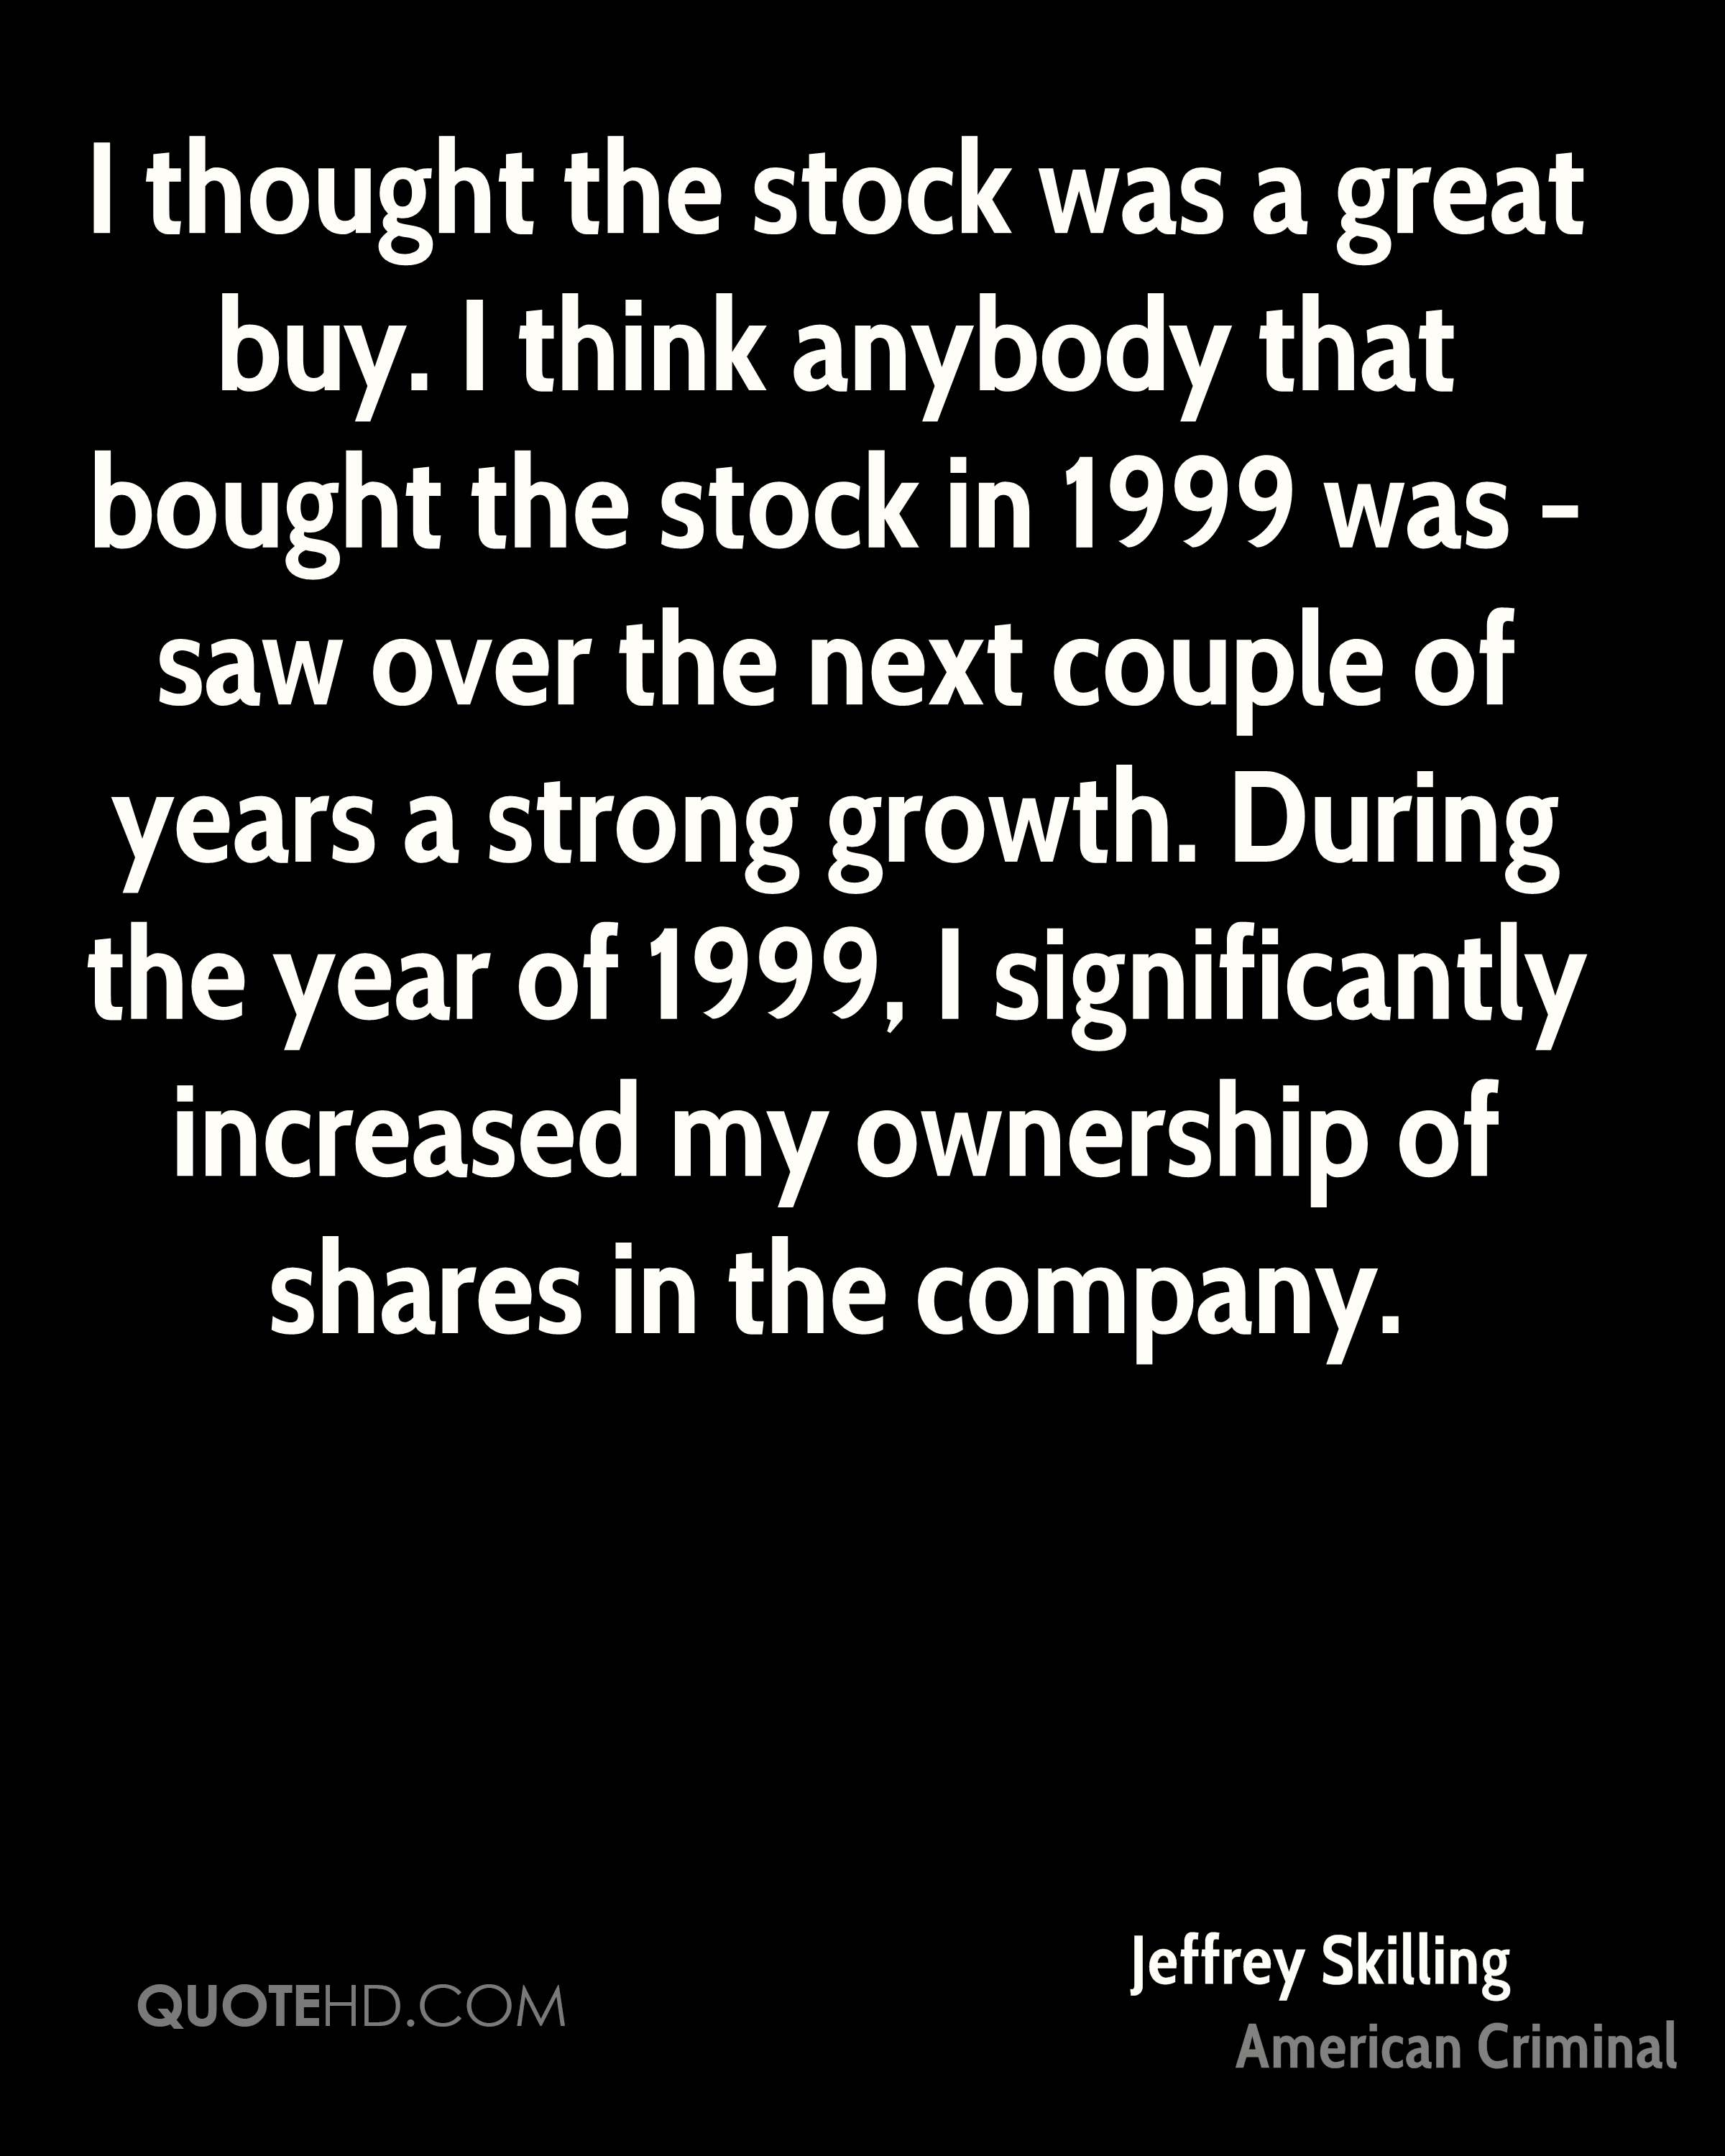 I thought the stock was a great buy. I think anybody that bought the stock in 1999 was - saw over the next couple of years a strong growth. During the year of 1999, I significantly increased my ownership of shares in the company.